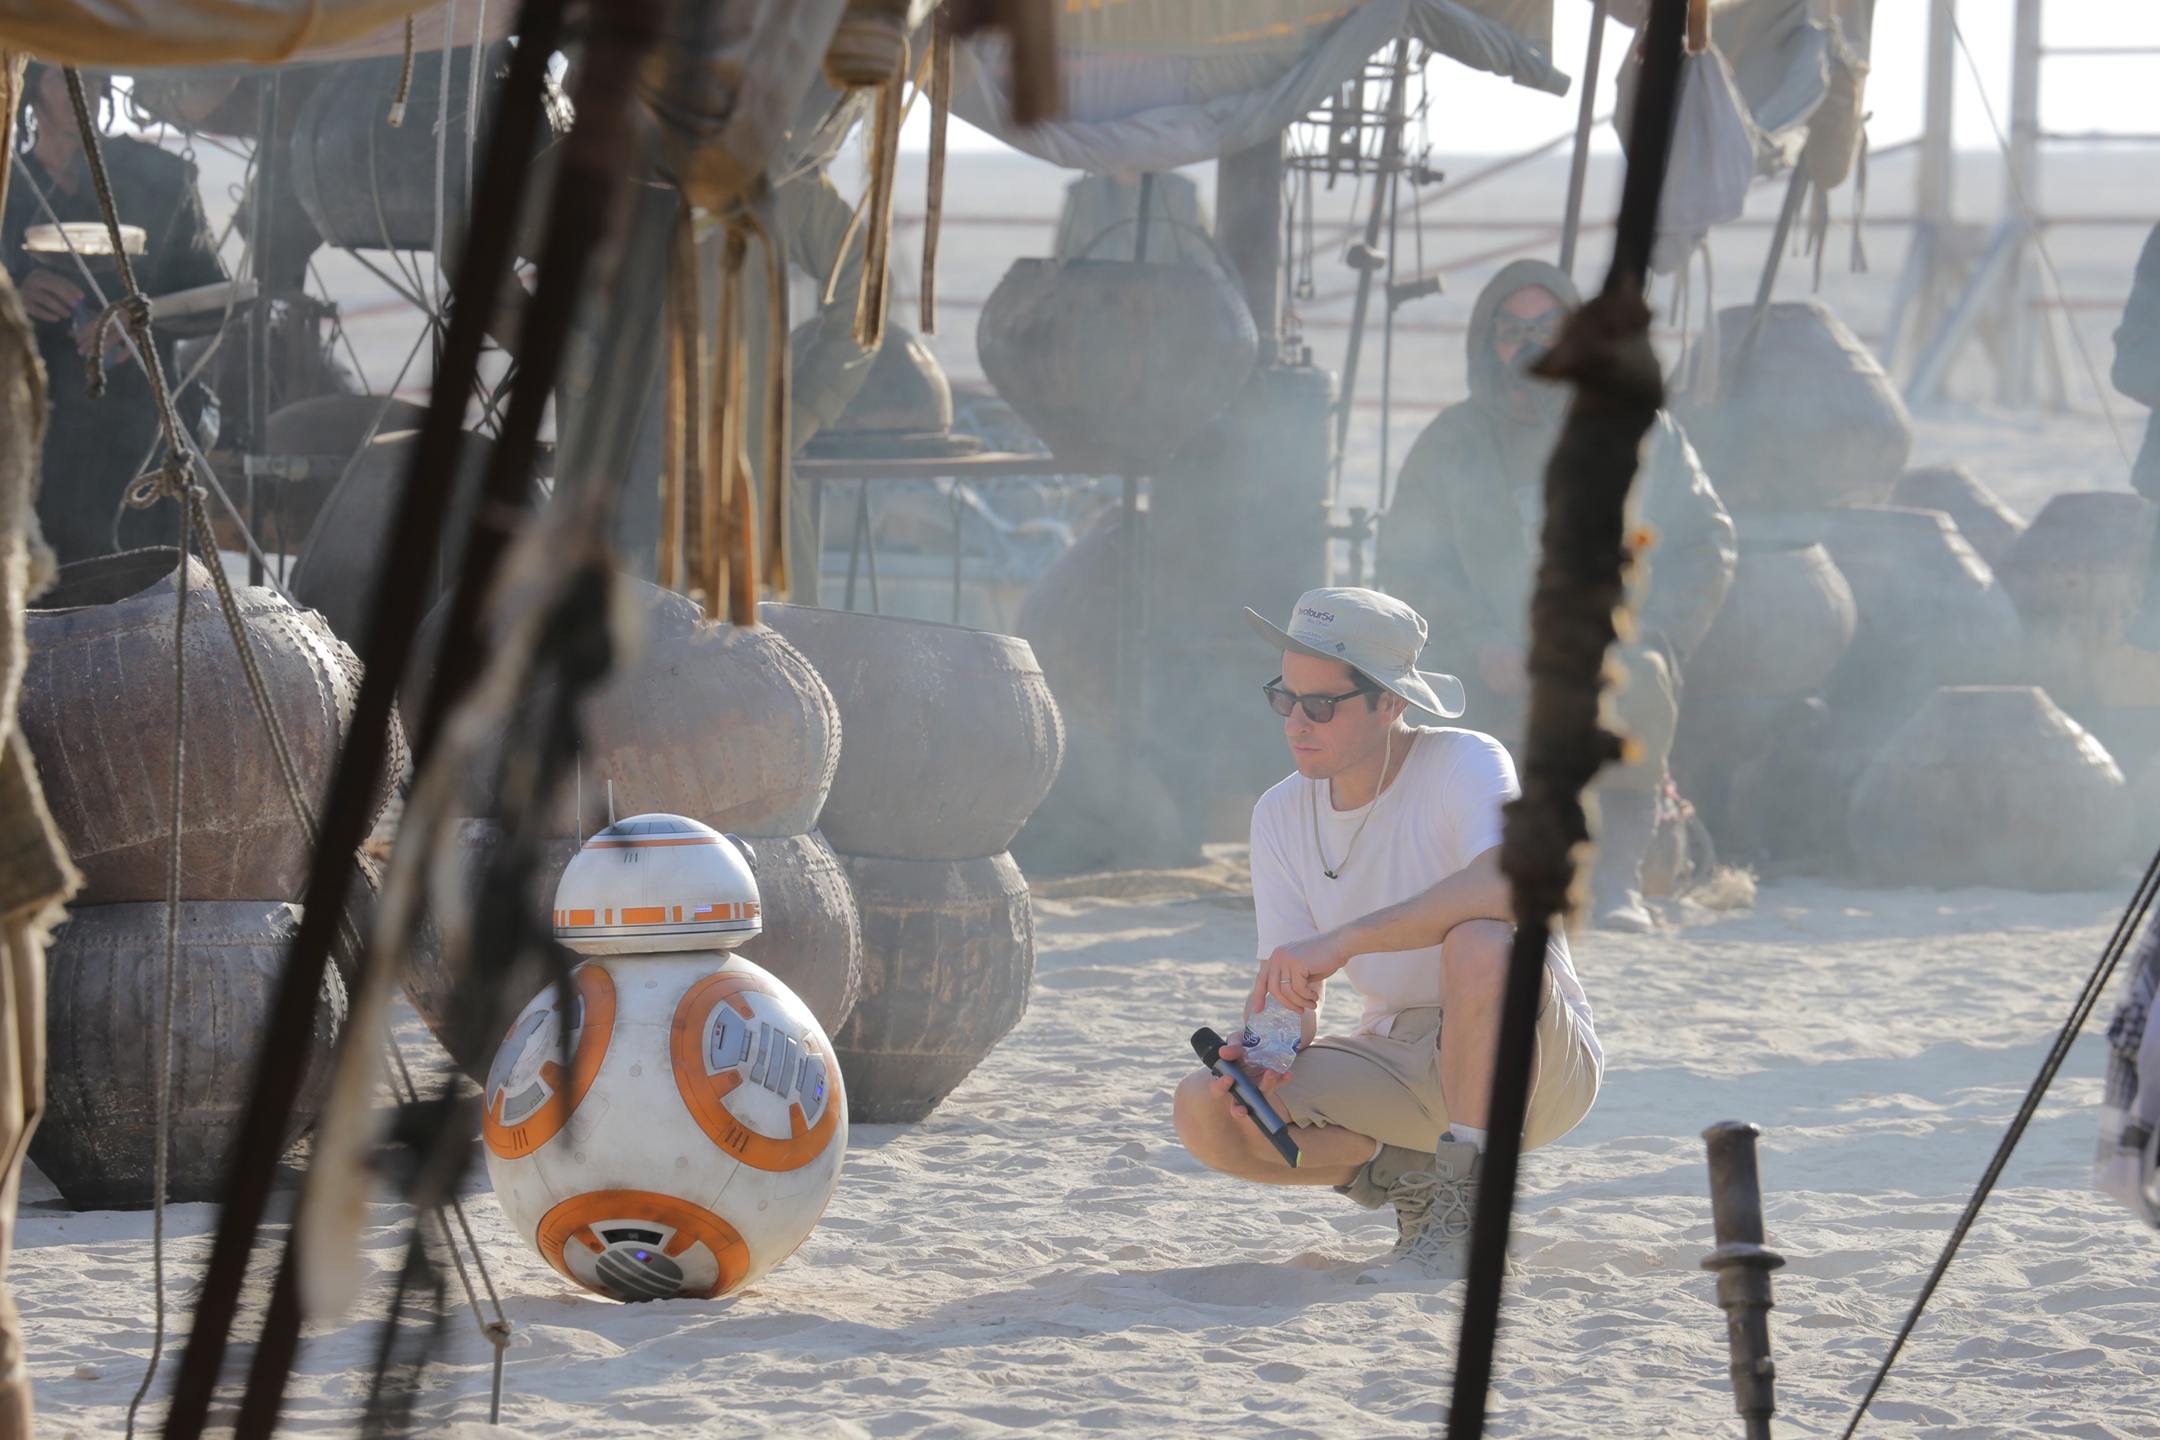 Droid Dreams: How Neal Scanlan and the Star Wars: The Force Awakens Team Brought BB-8 to Life | StarWars.com